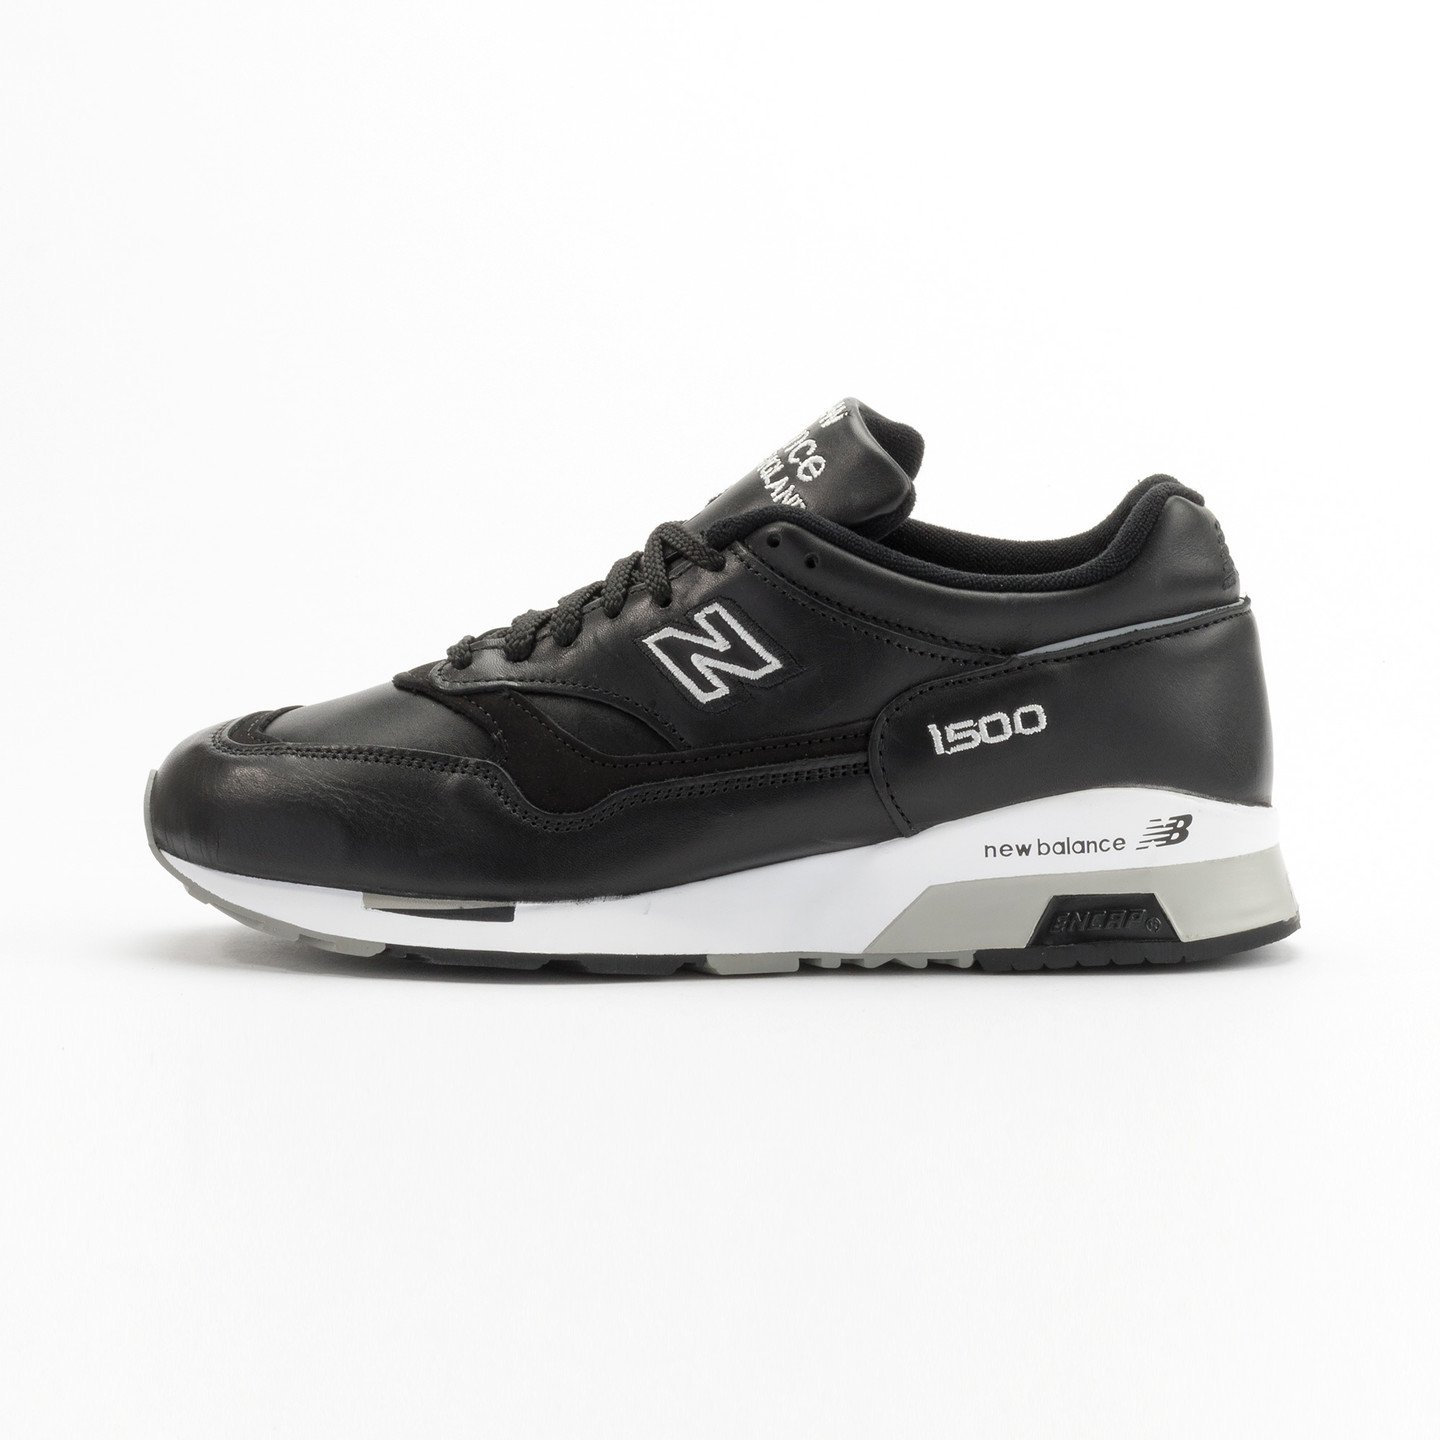 New Balance M1500 BK - Made in England Black / White Shadow M1500BK-45.5